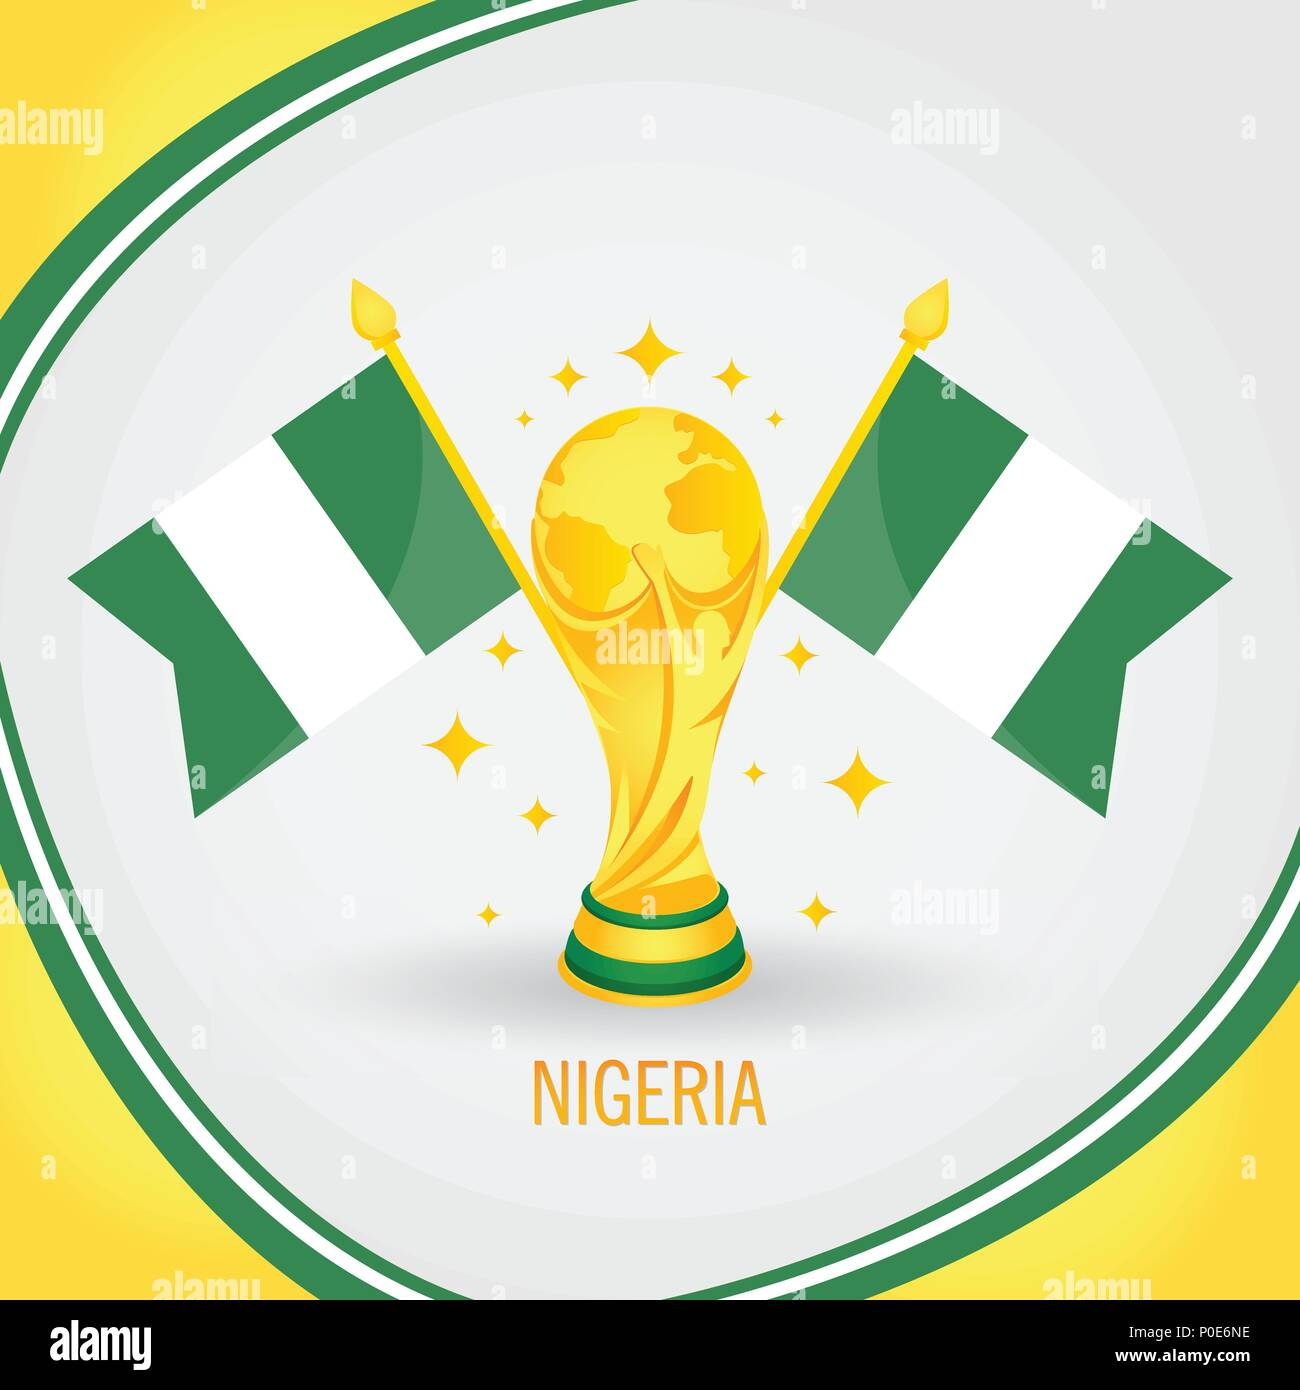 Nigeria Football Champion World Cup 2018 - Flag and Golden Trophy - Stock Vector